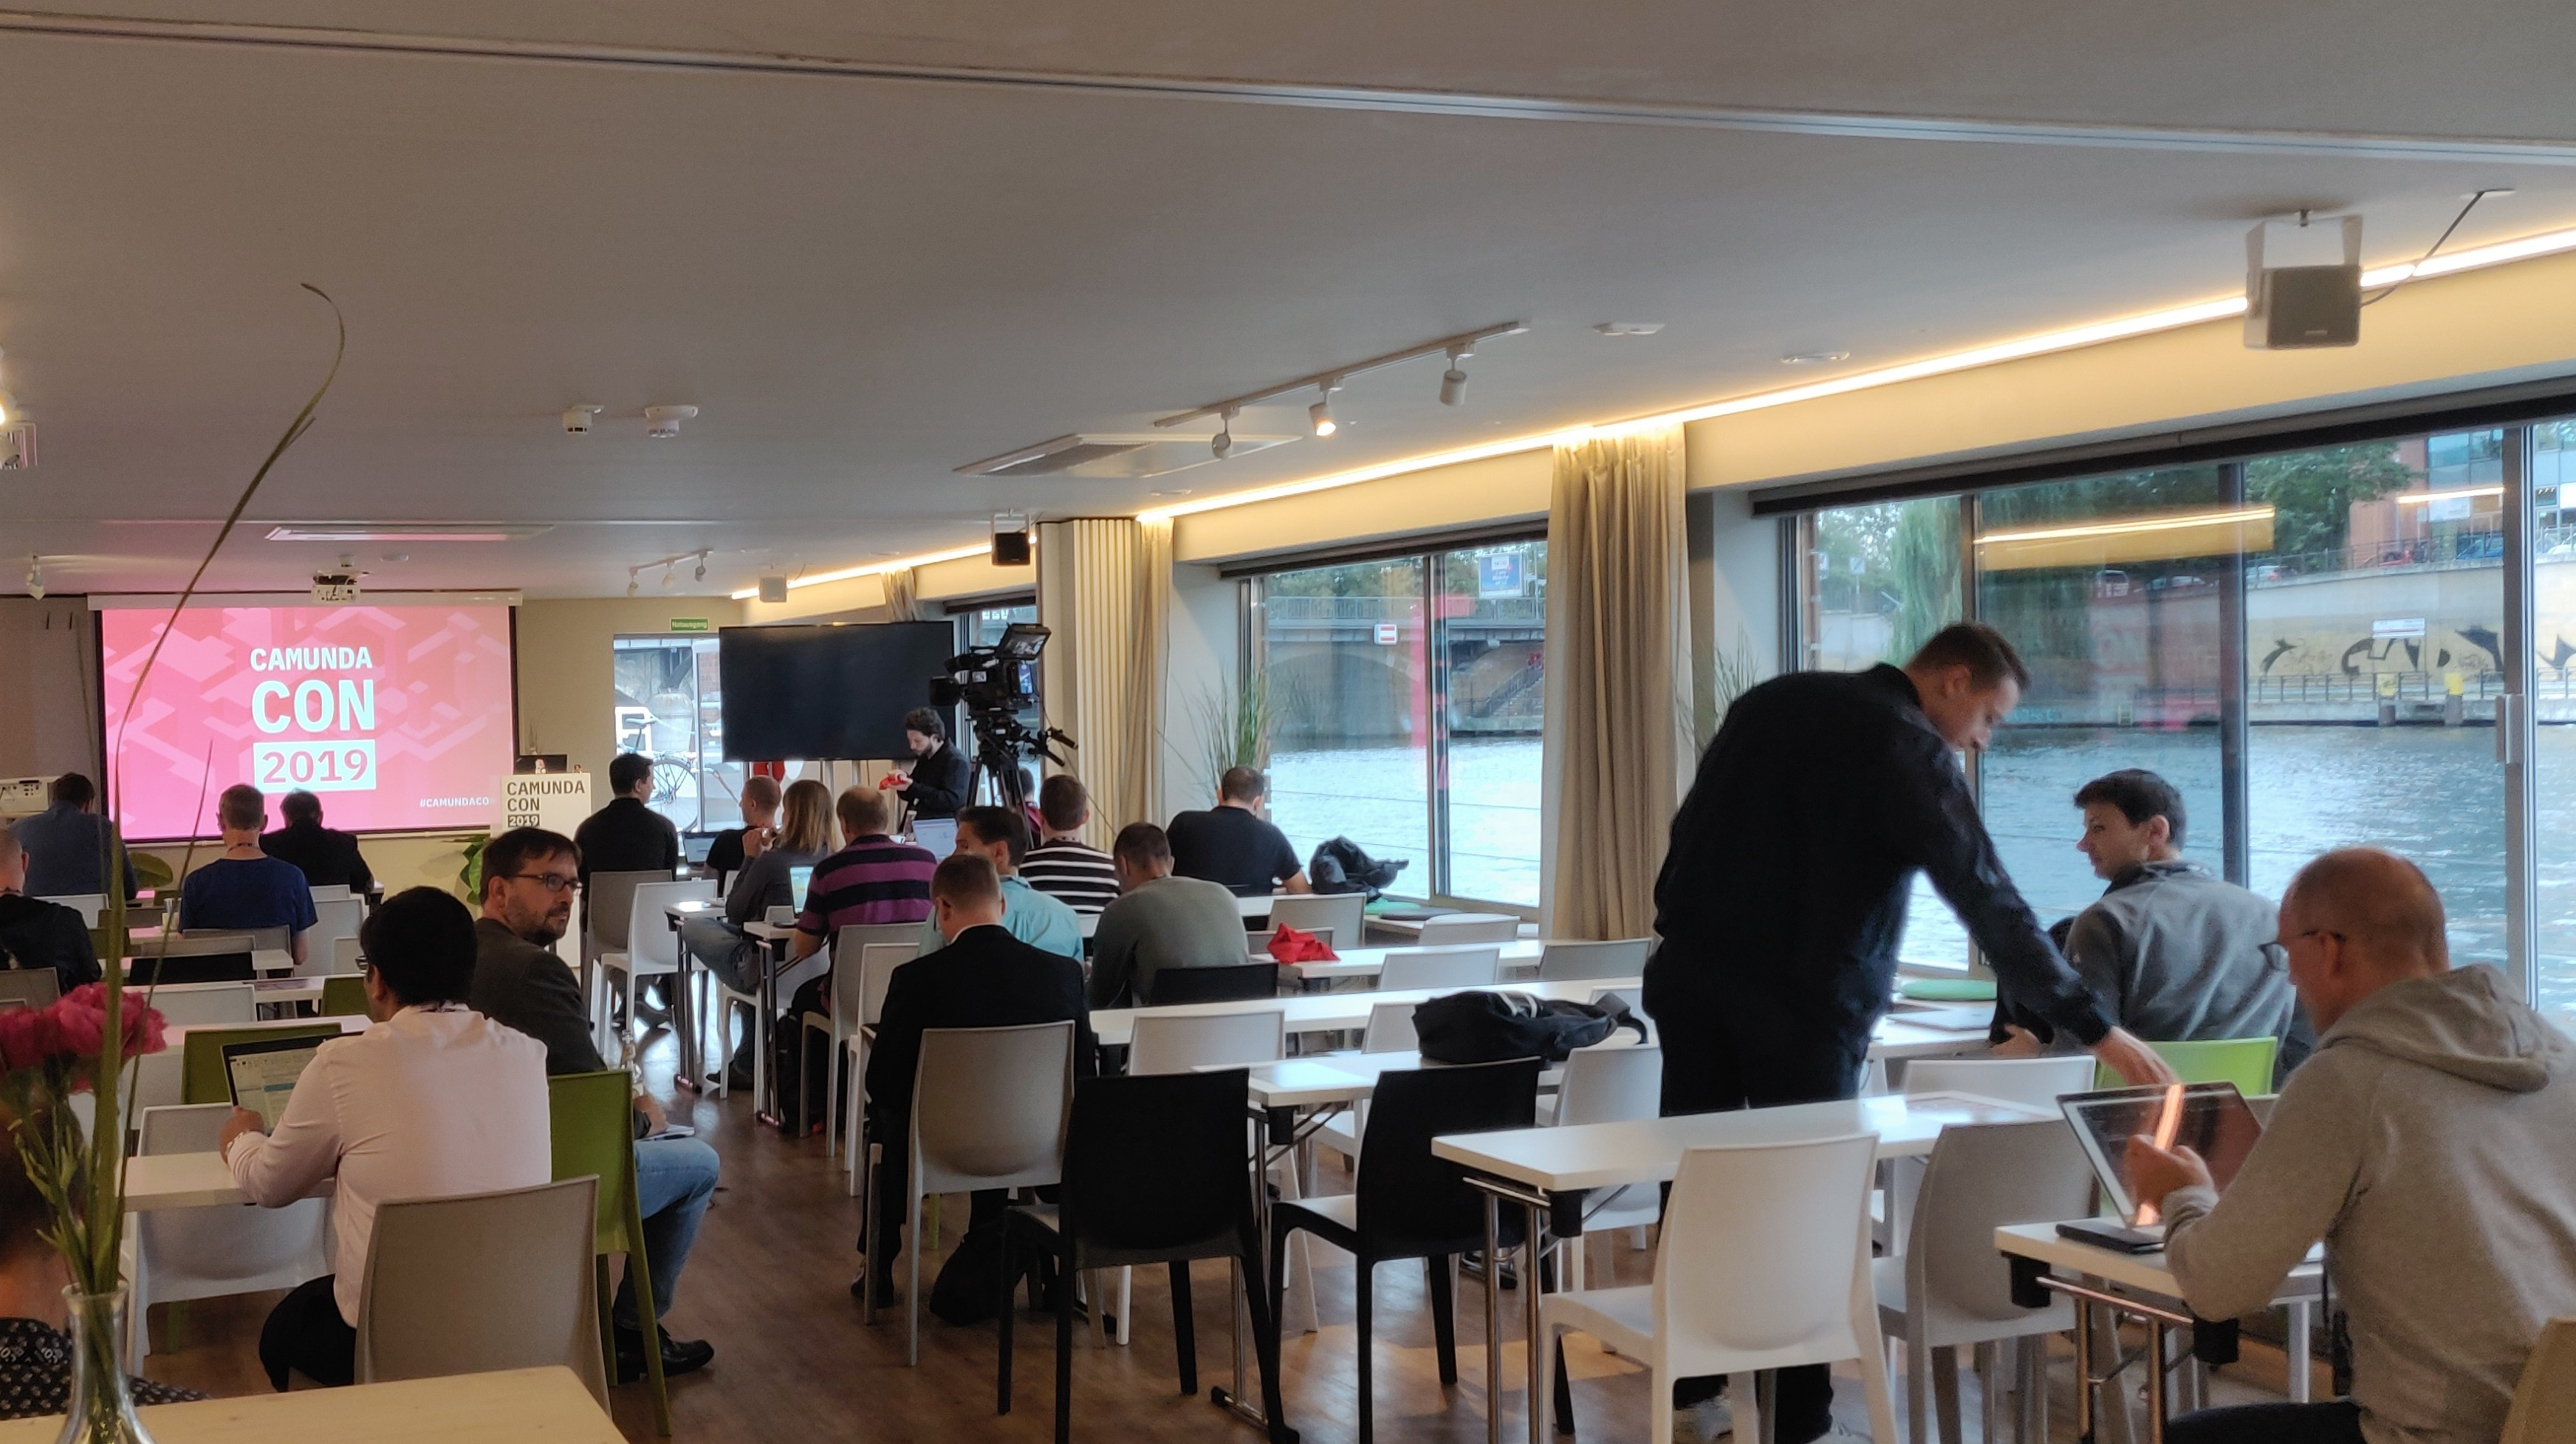 Code-Workshops auf dem CamundaCon-Boot